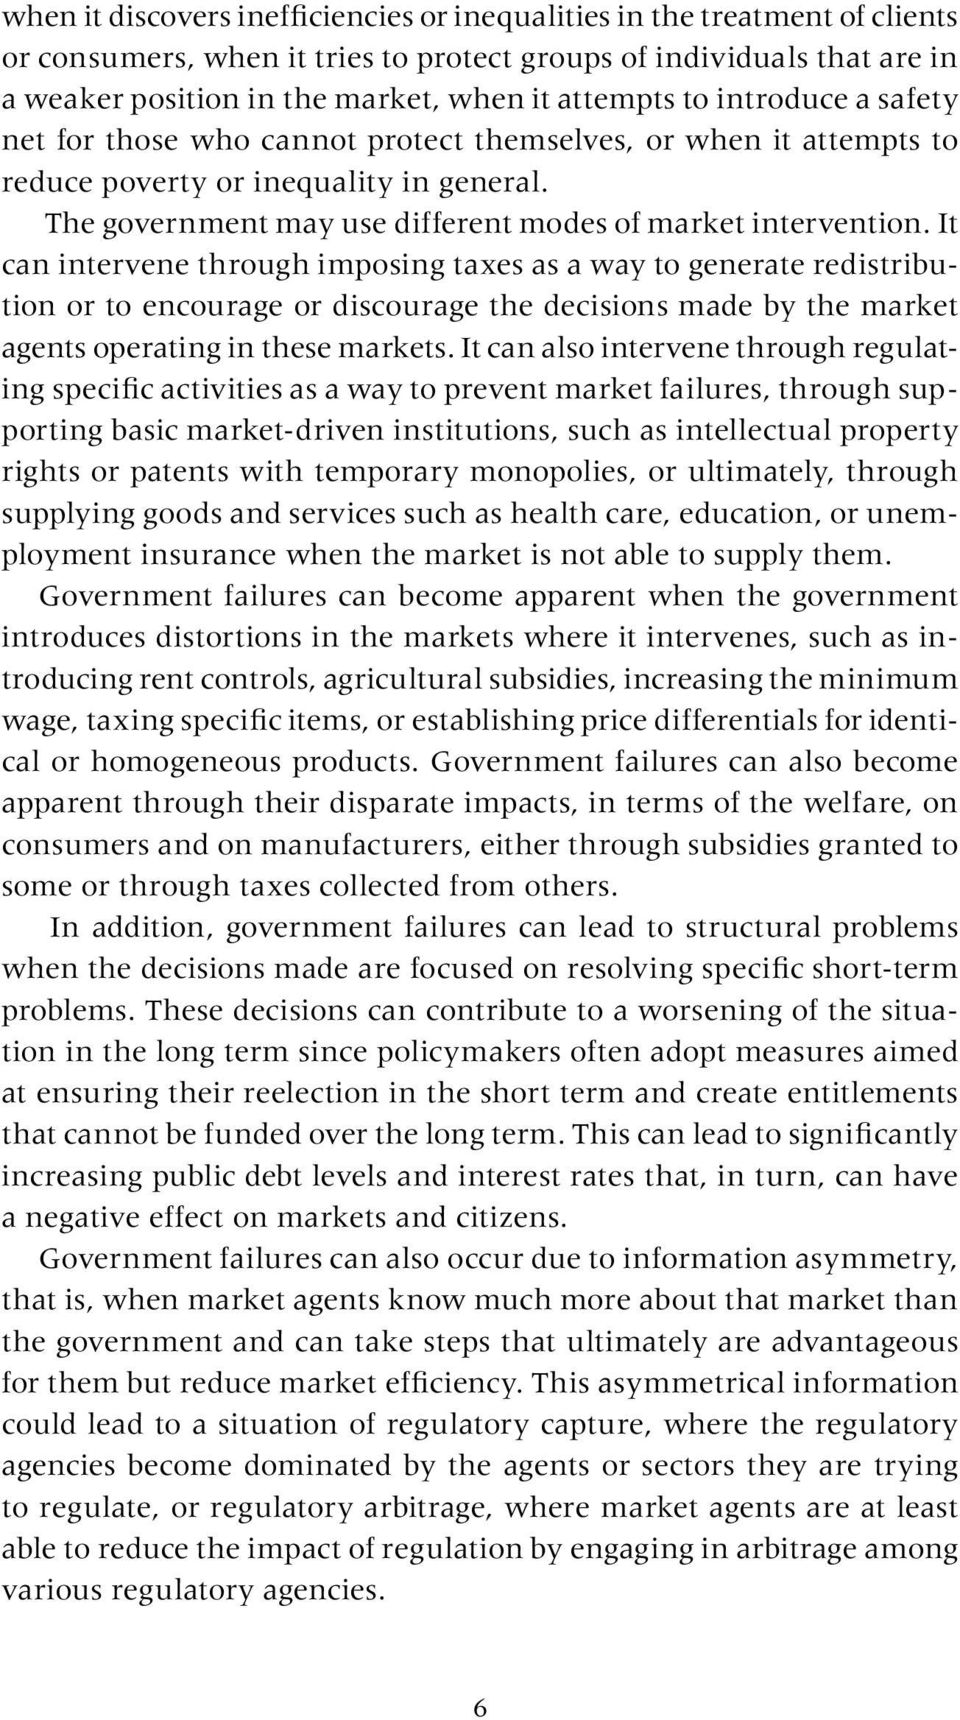 It can intervene through imposing taxes as a way to generate redistribution or to encourage or discourage the decisions made by the market agents operating in these markets.